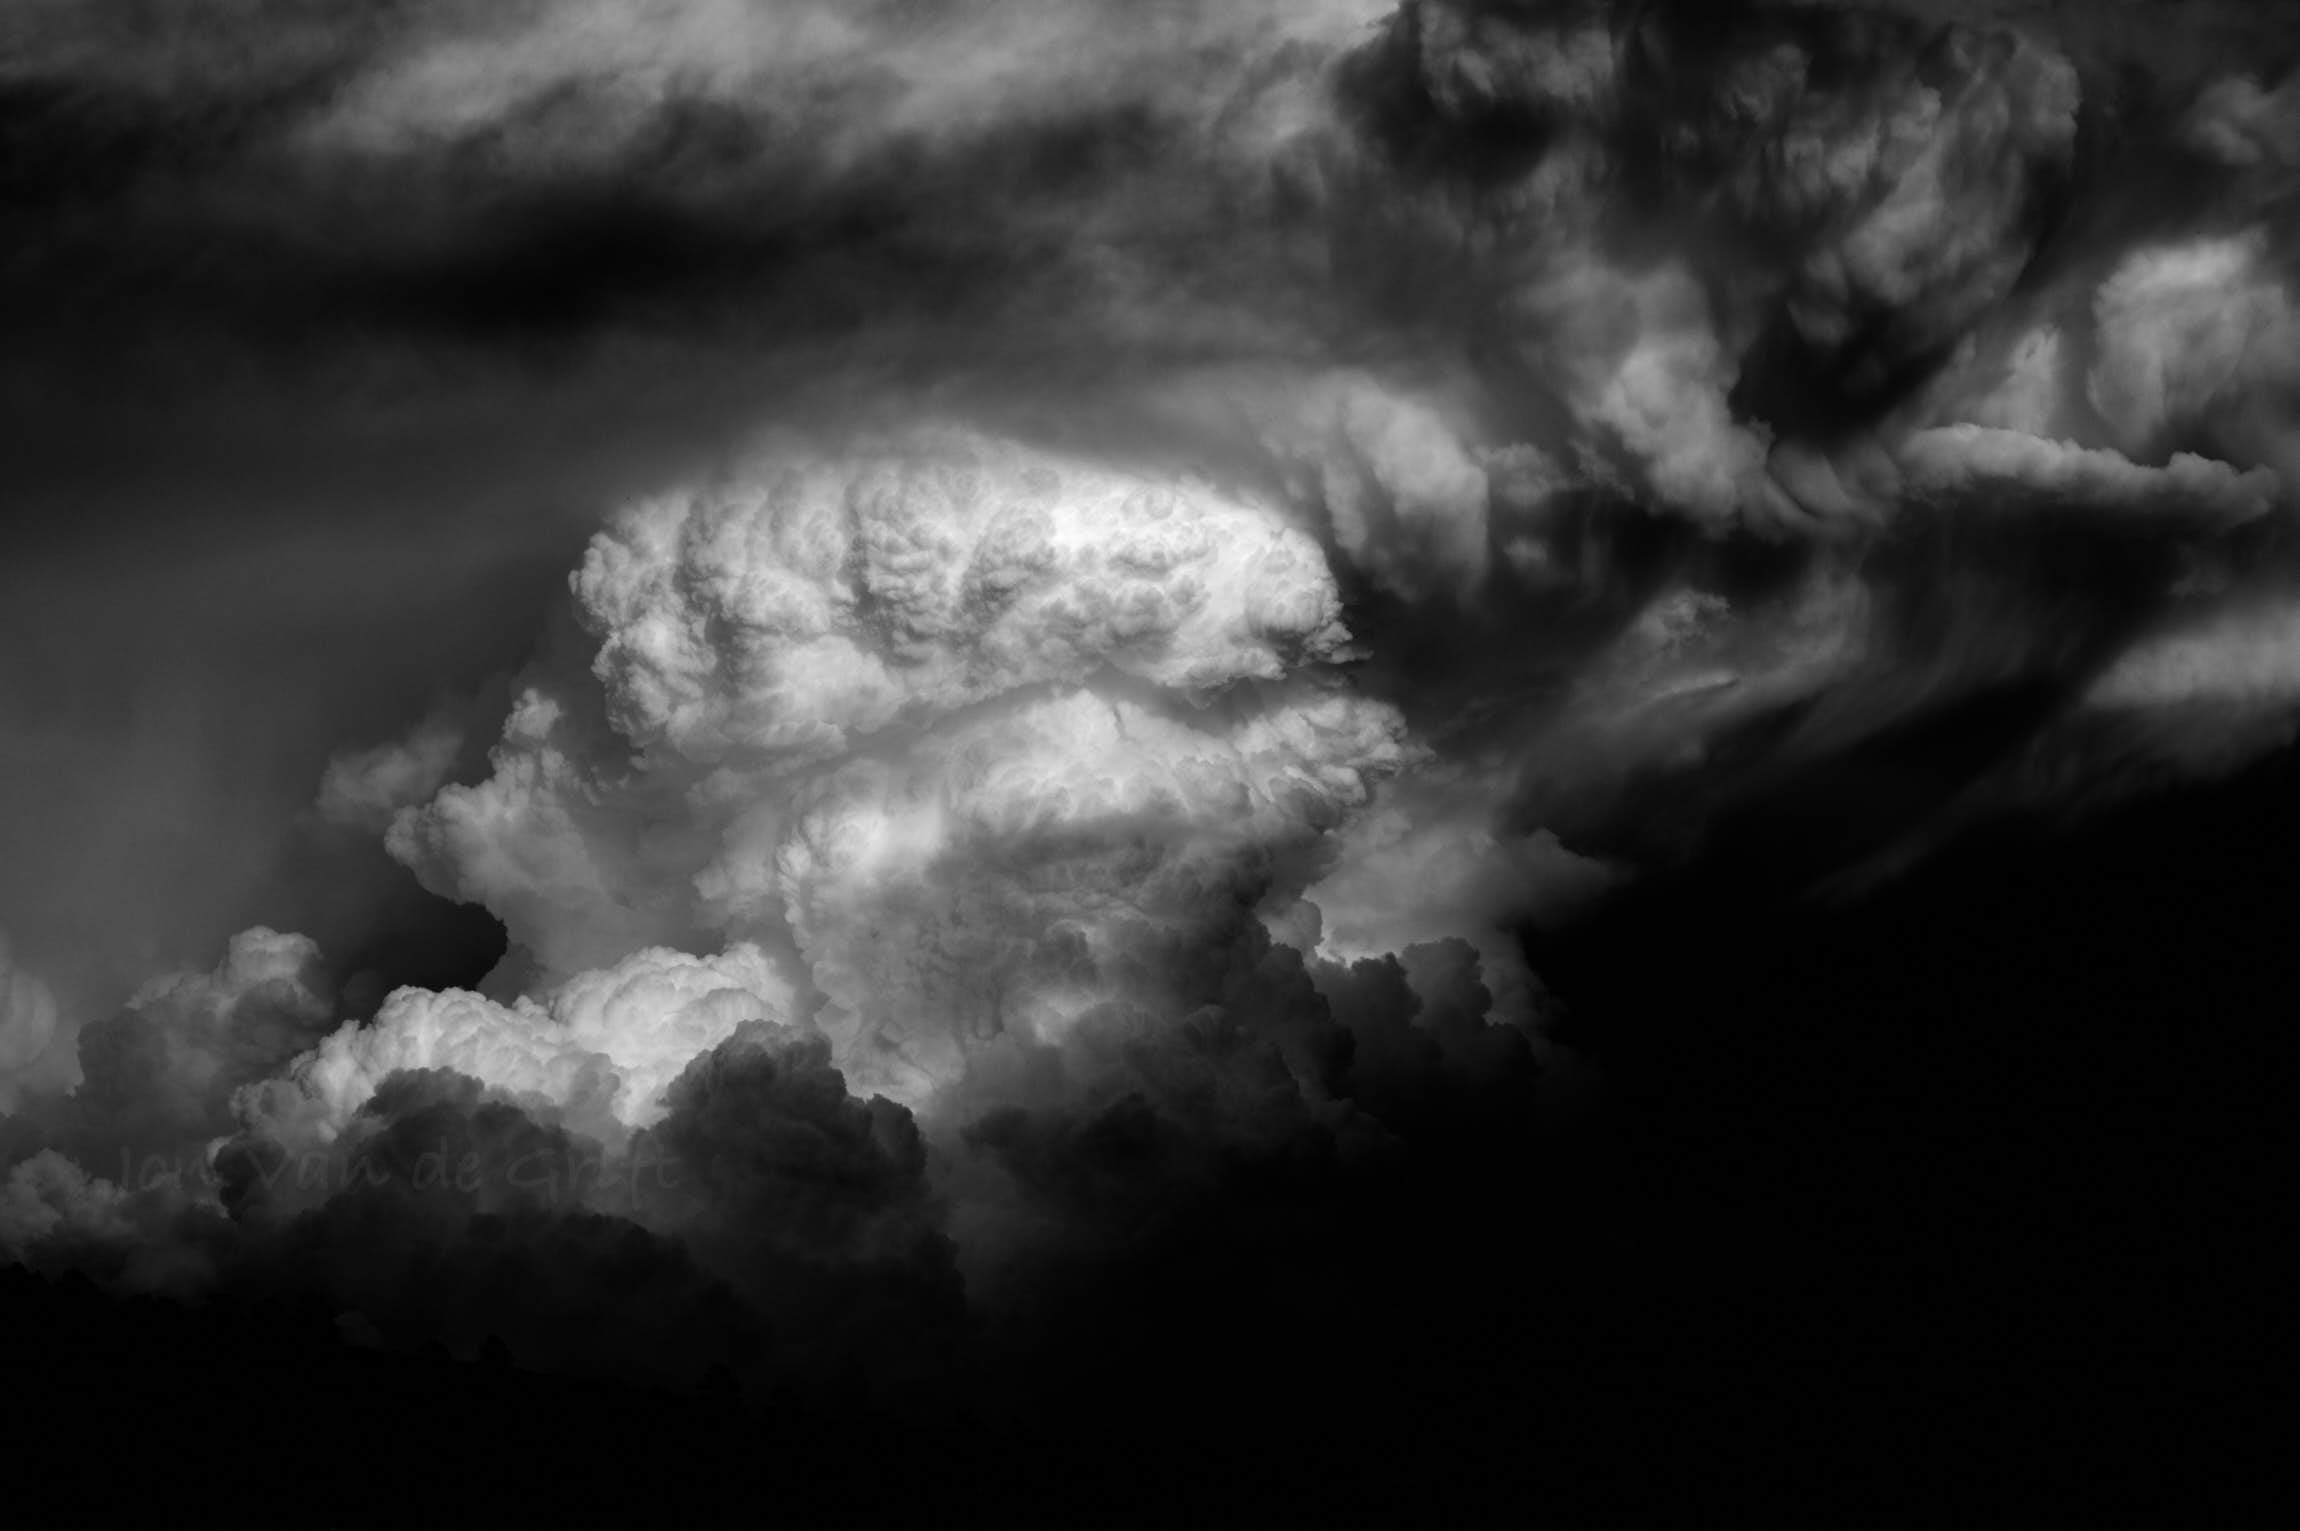 Black and white aerial photograph of thunderstorm clouds at sunset